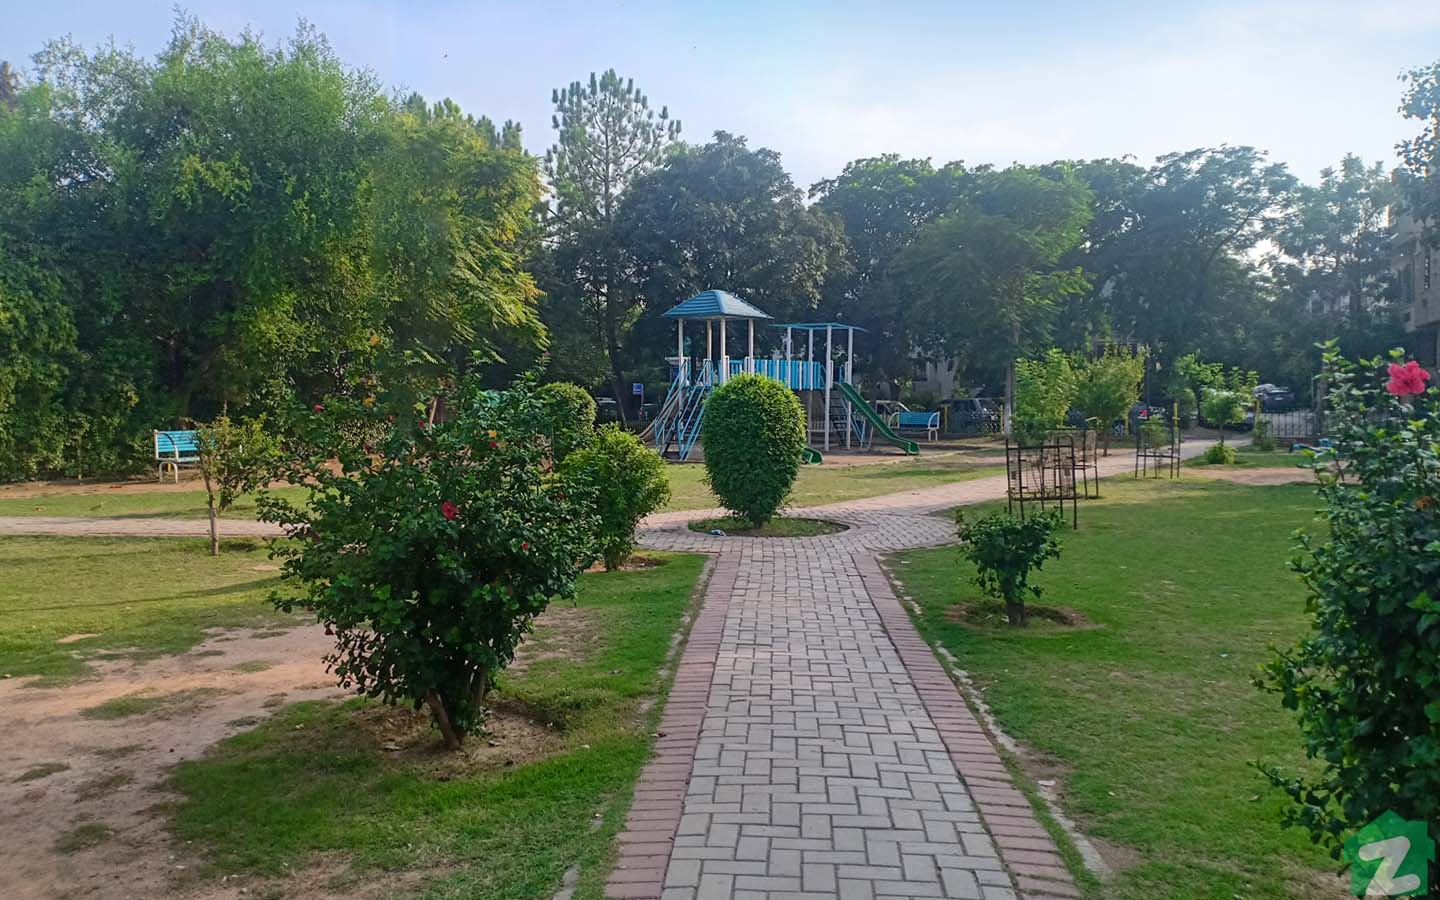 A well-maintained park in society